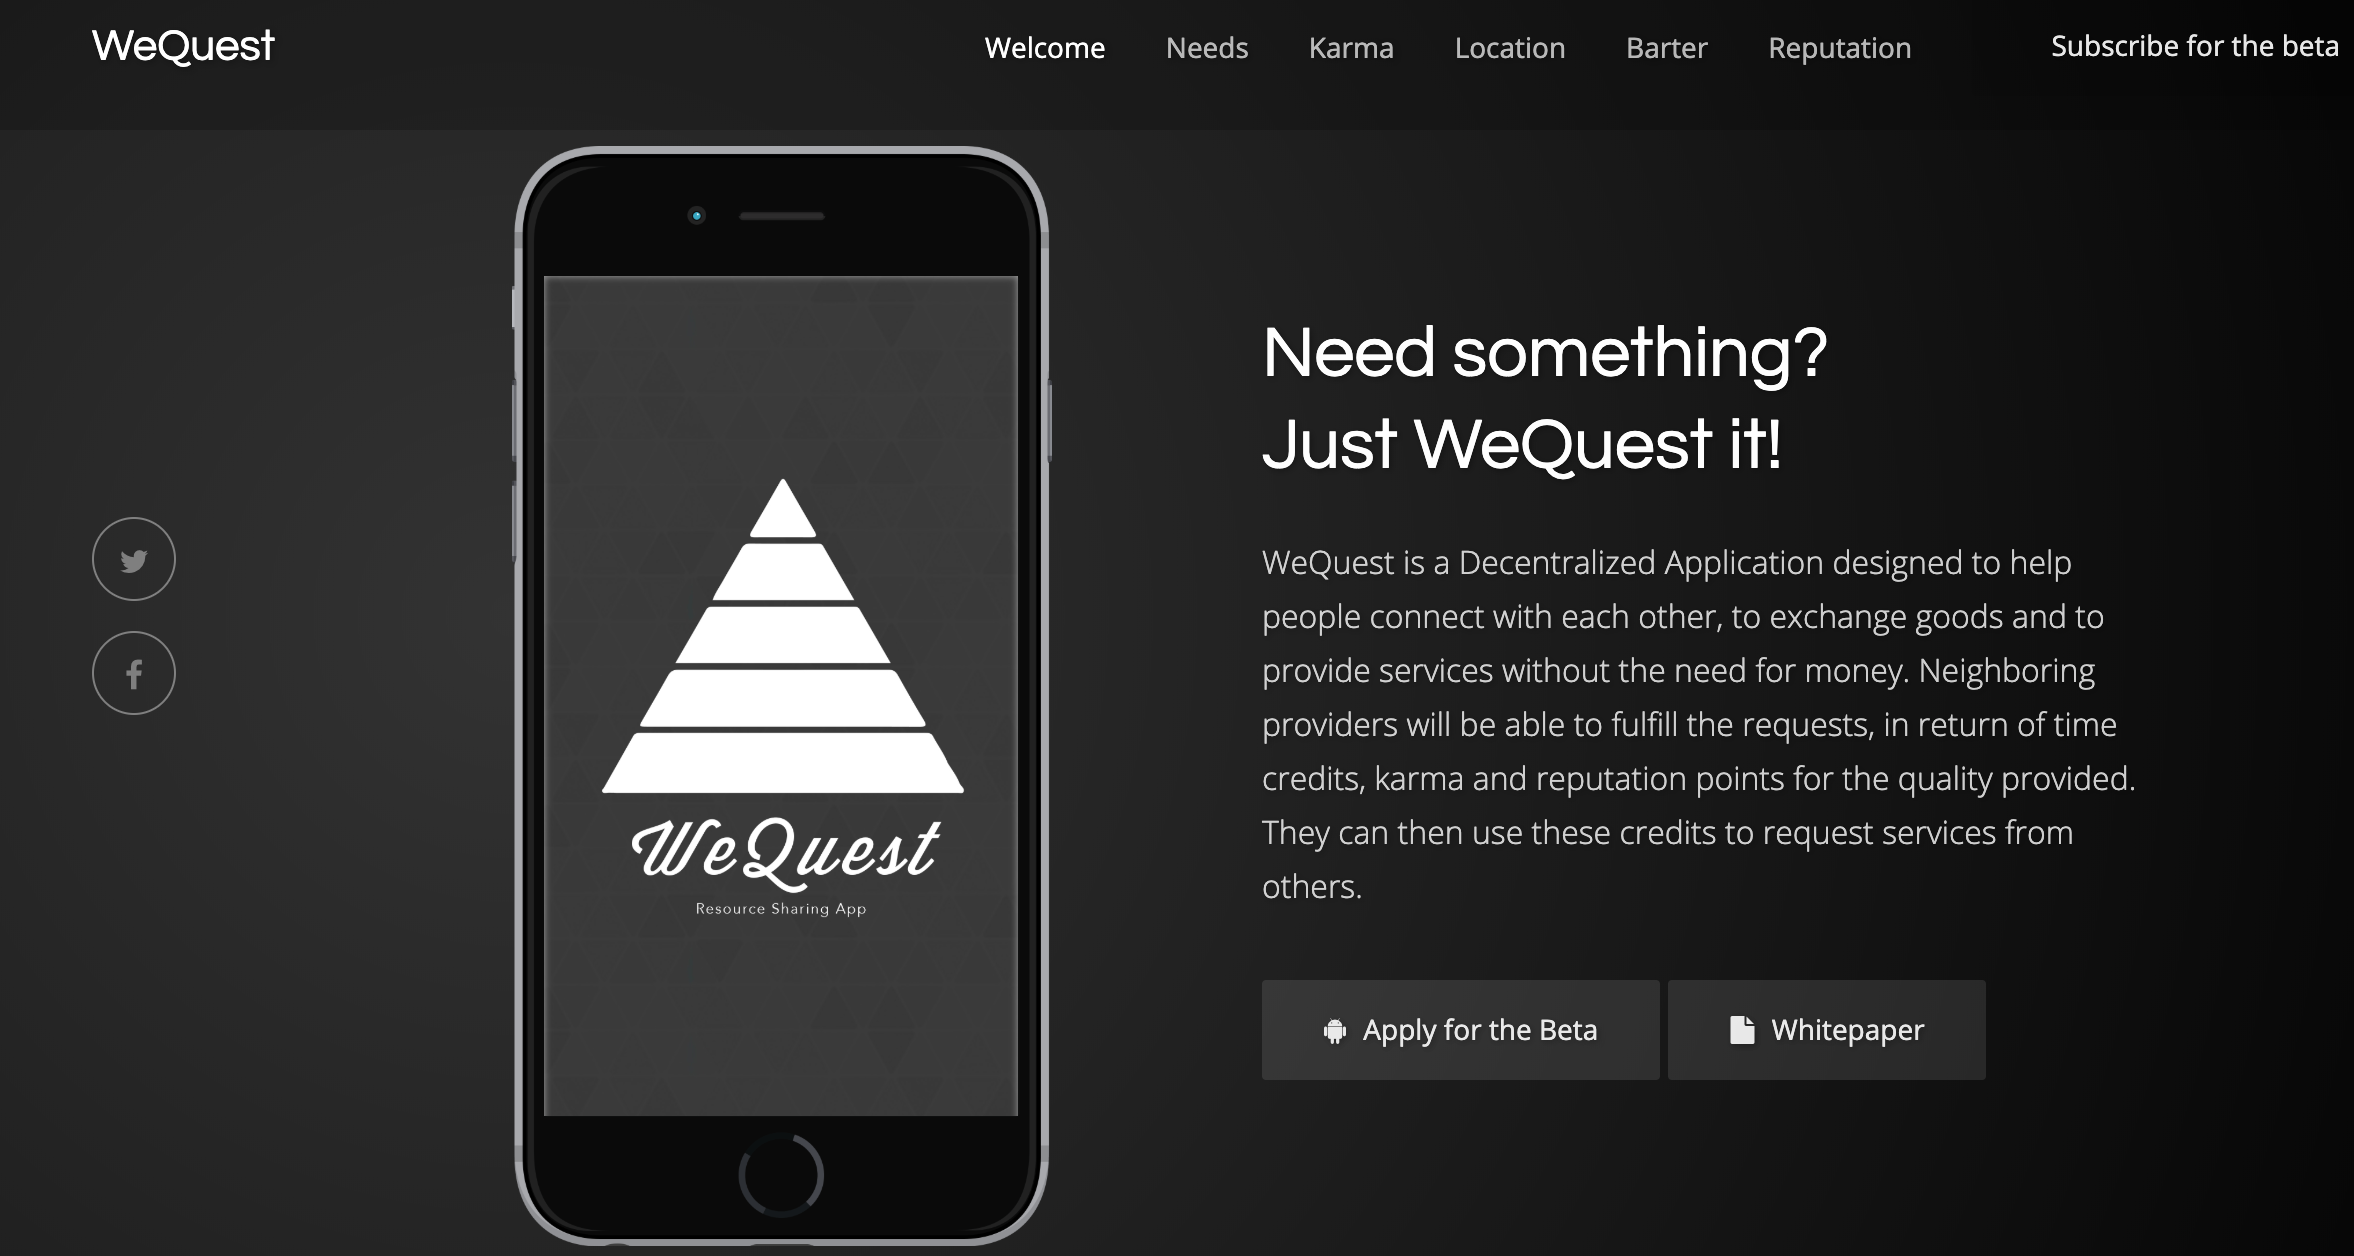 WeQuest - What do WE need today?